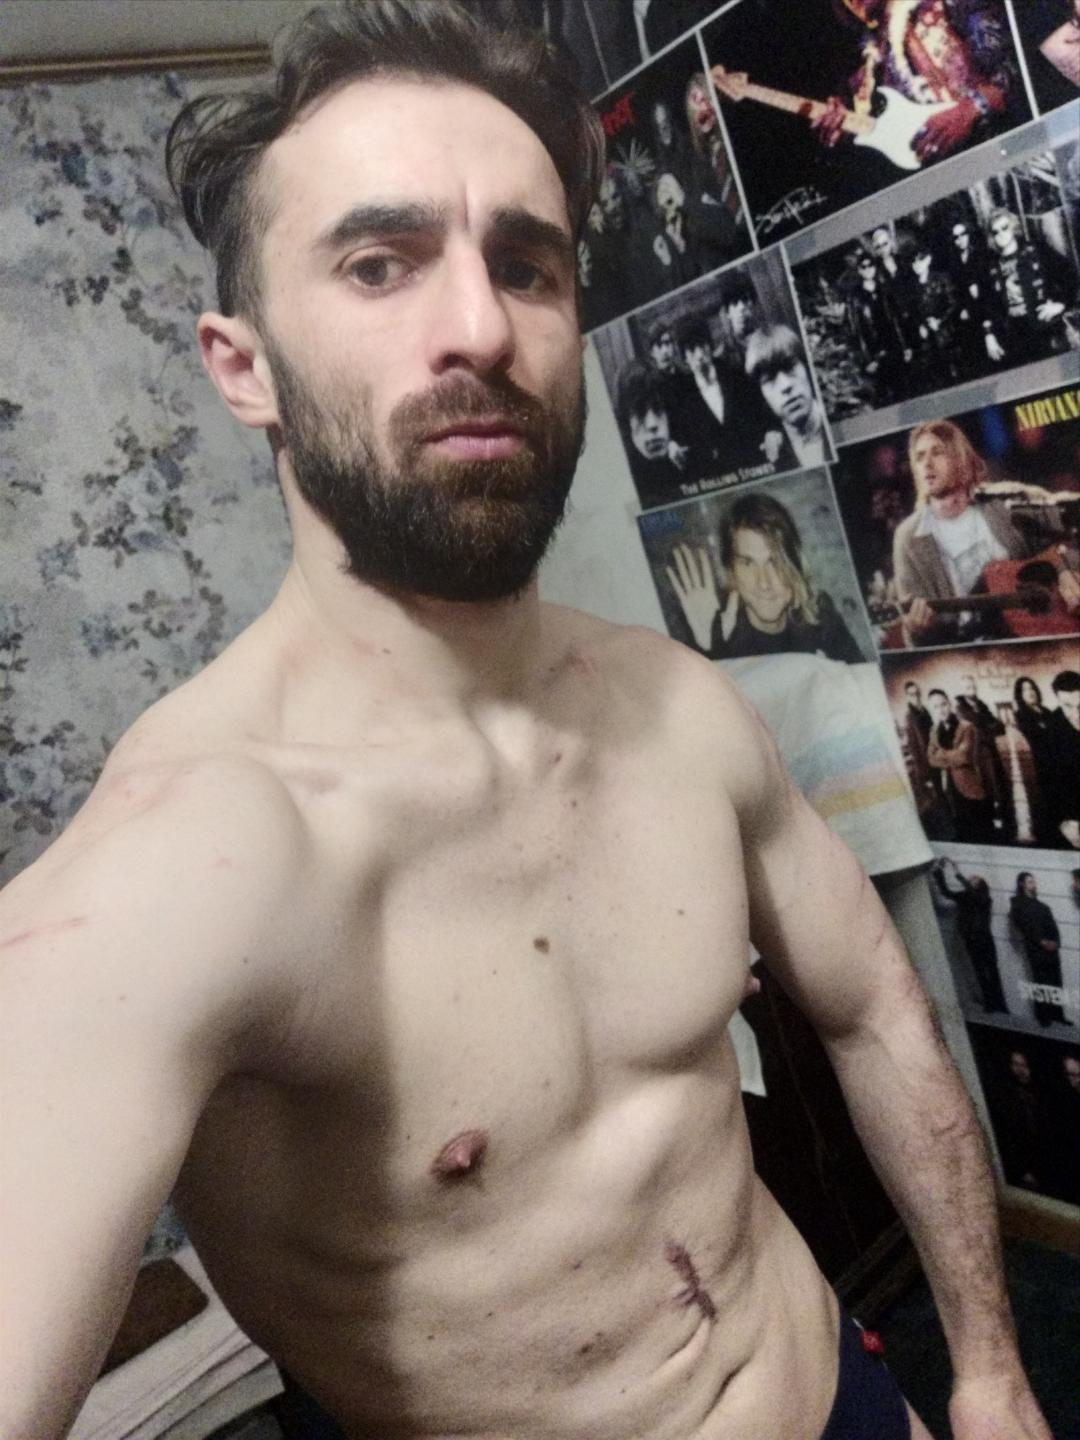 Live Cam Gay Porn Category - Free Male XXX Tube Videos